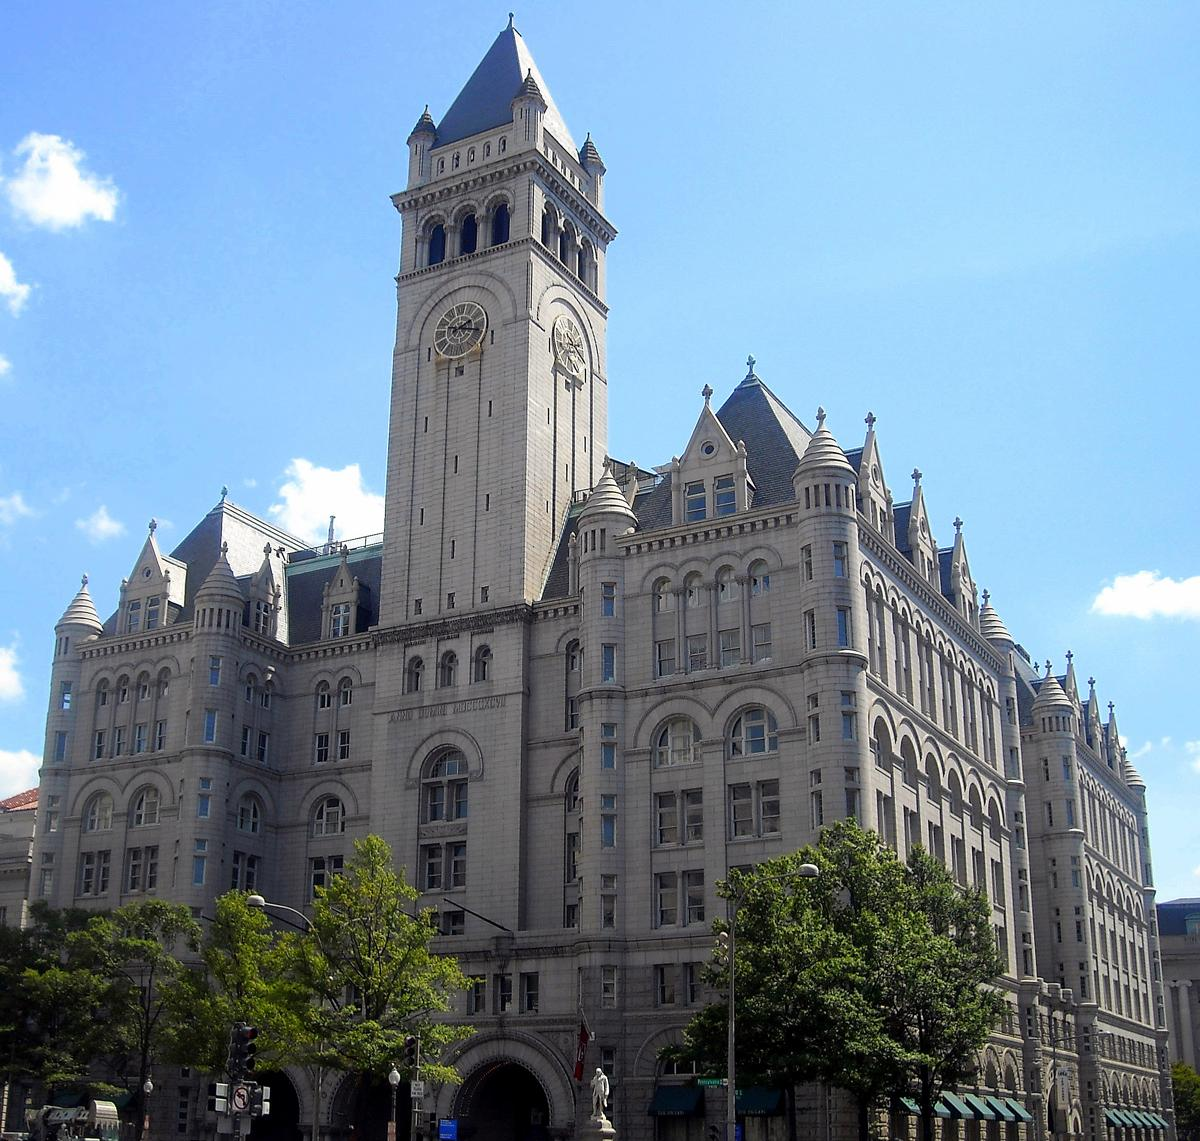 The spa will be located in The Old Post Office in Washington, D.C., and is part of the property's US US$200m (€144.4m, £119m) redevelopment